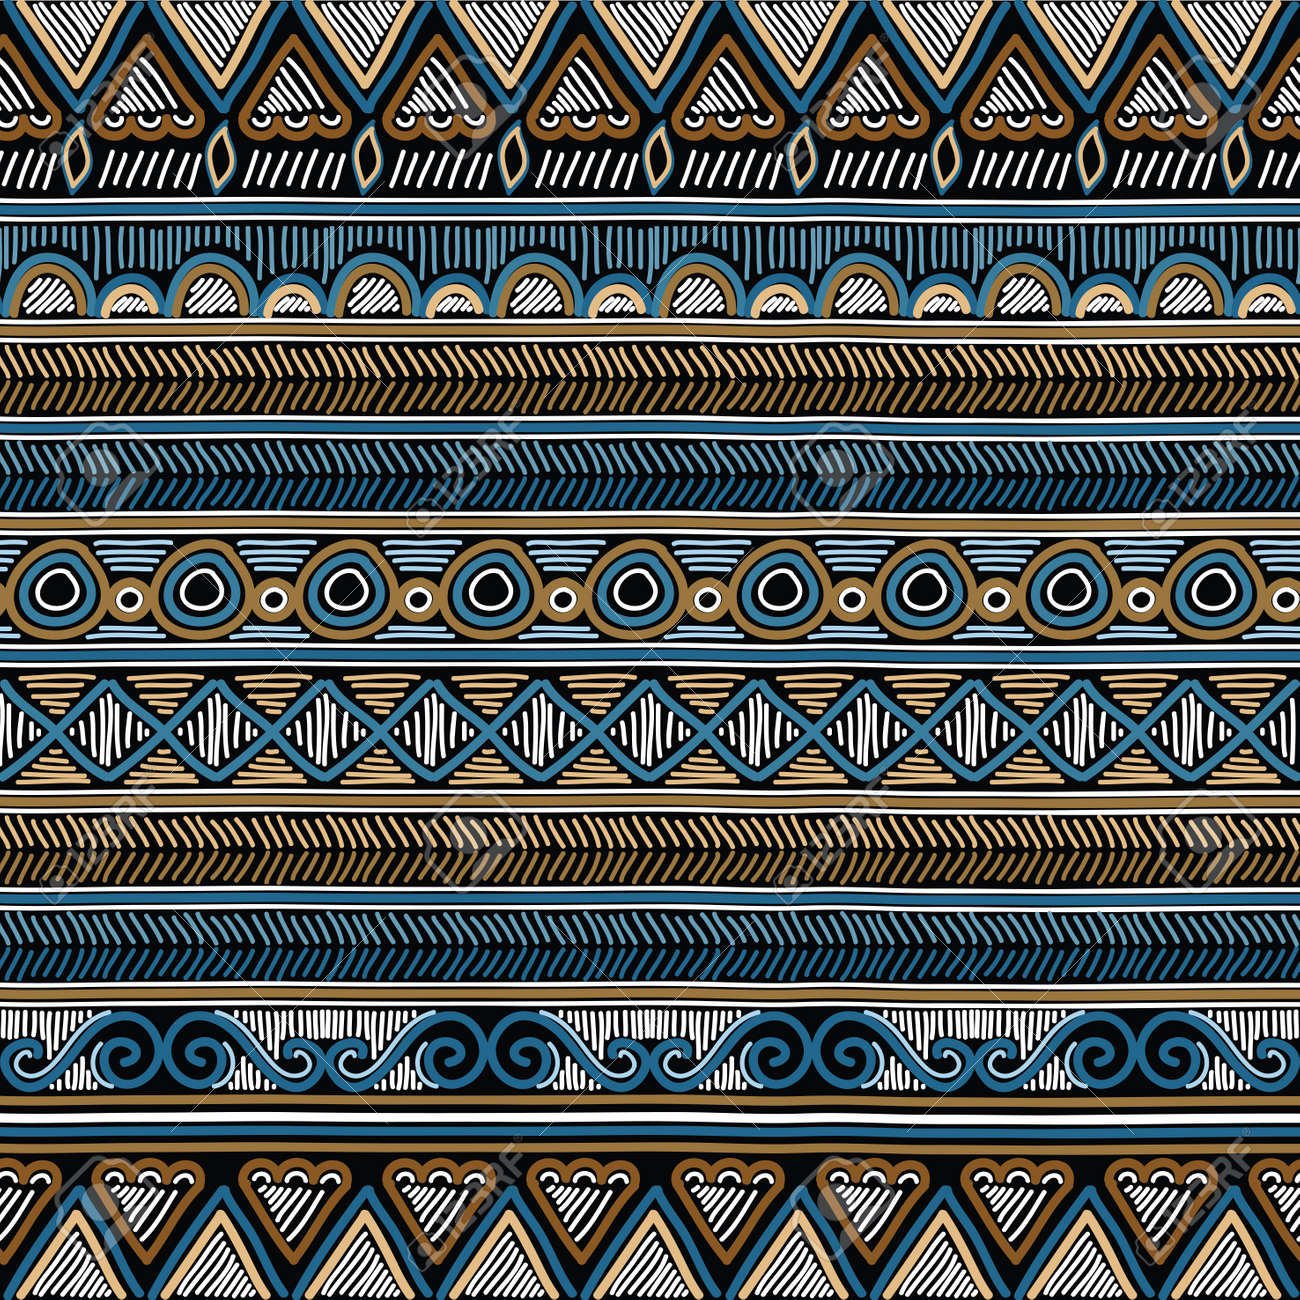 Geometric ethnic oriental seamless pattern. Hand doodled traditional design for carpet, wallpaper, textile and fabric. Embroidery stylized vector illustration. Print for clothing. - 82073397